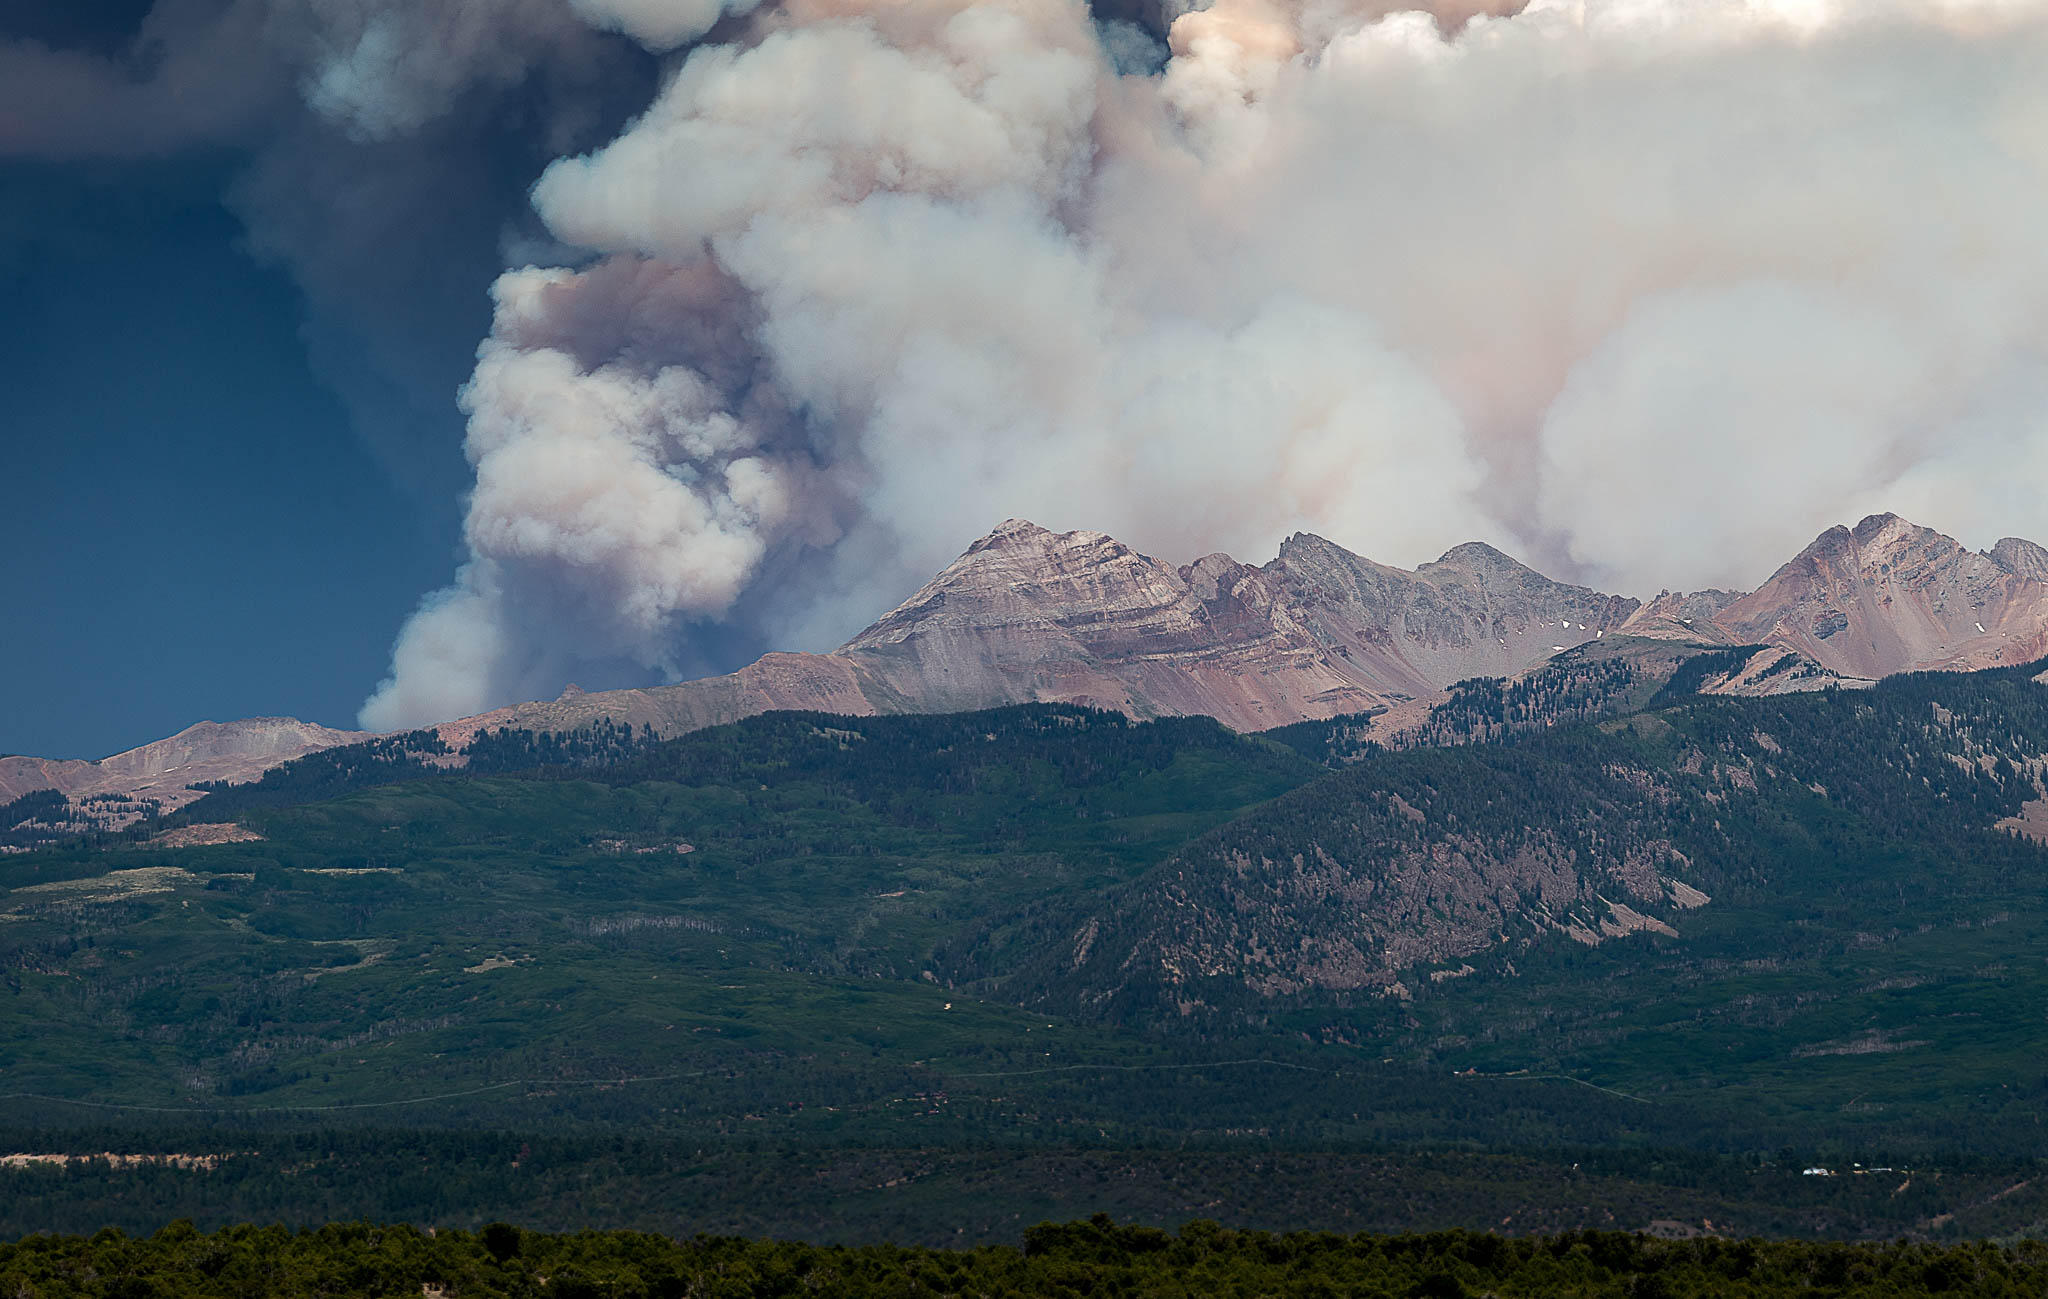 The 416 Fire burned about 54,000 acres in southwest Colorado in 2018. On Tuesday, the federal government filed a lawsuit accusing the Durango and Silverton Narrow Gauge Railroad Co. of starting the fire.